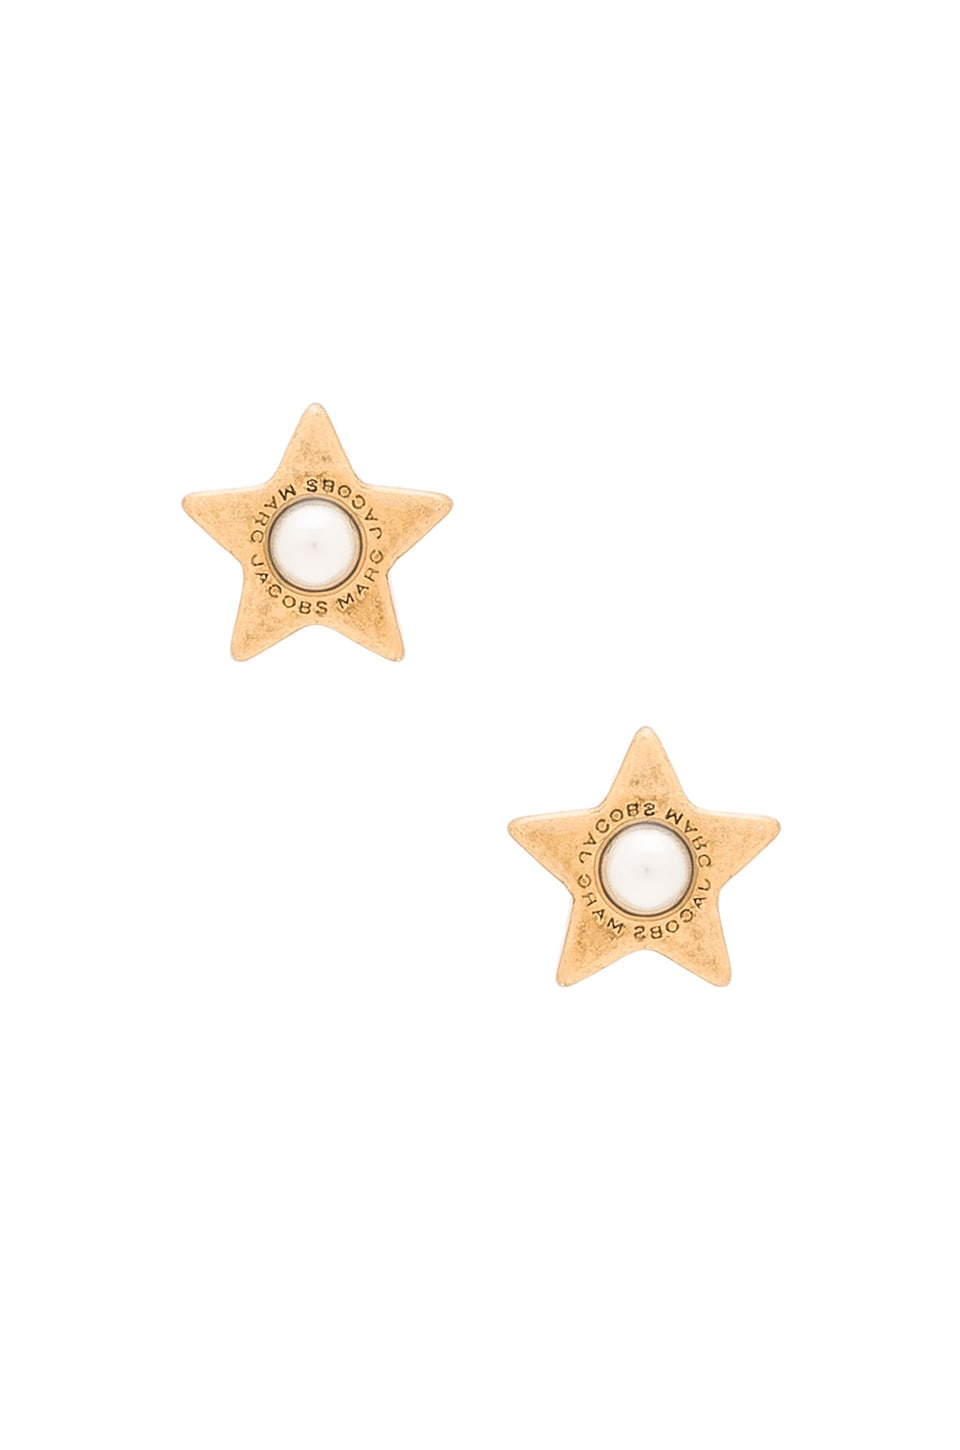 c43c536a9178 Marc Jacobs Charms Flat Pearl Star Stud Earrings in Cream   Antique Gold